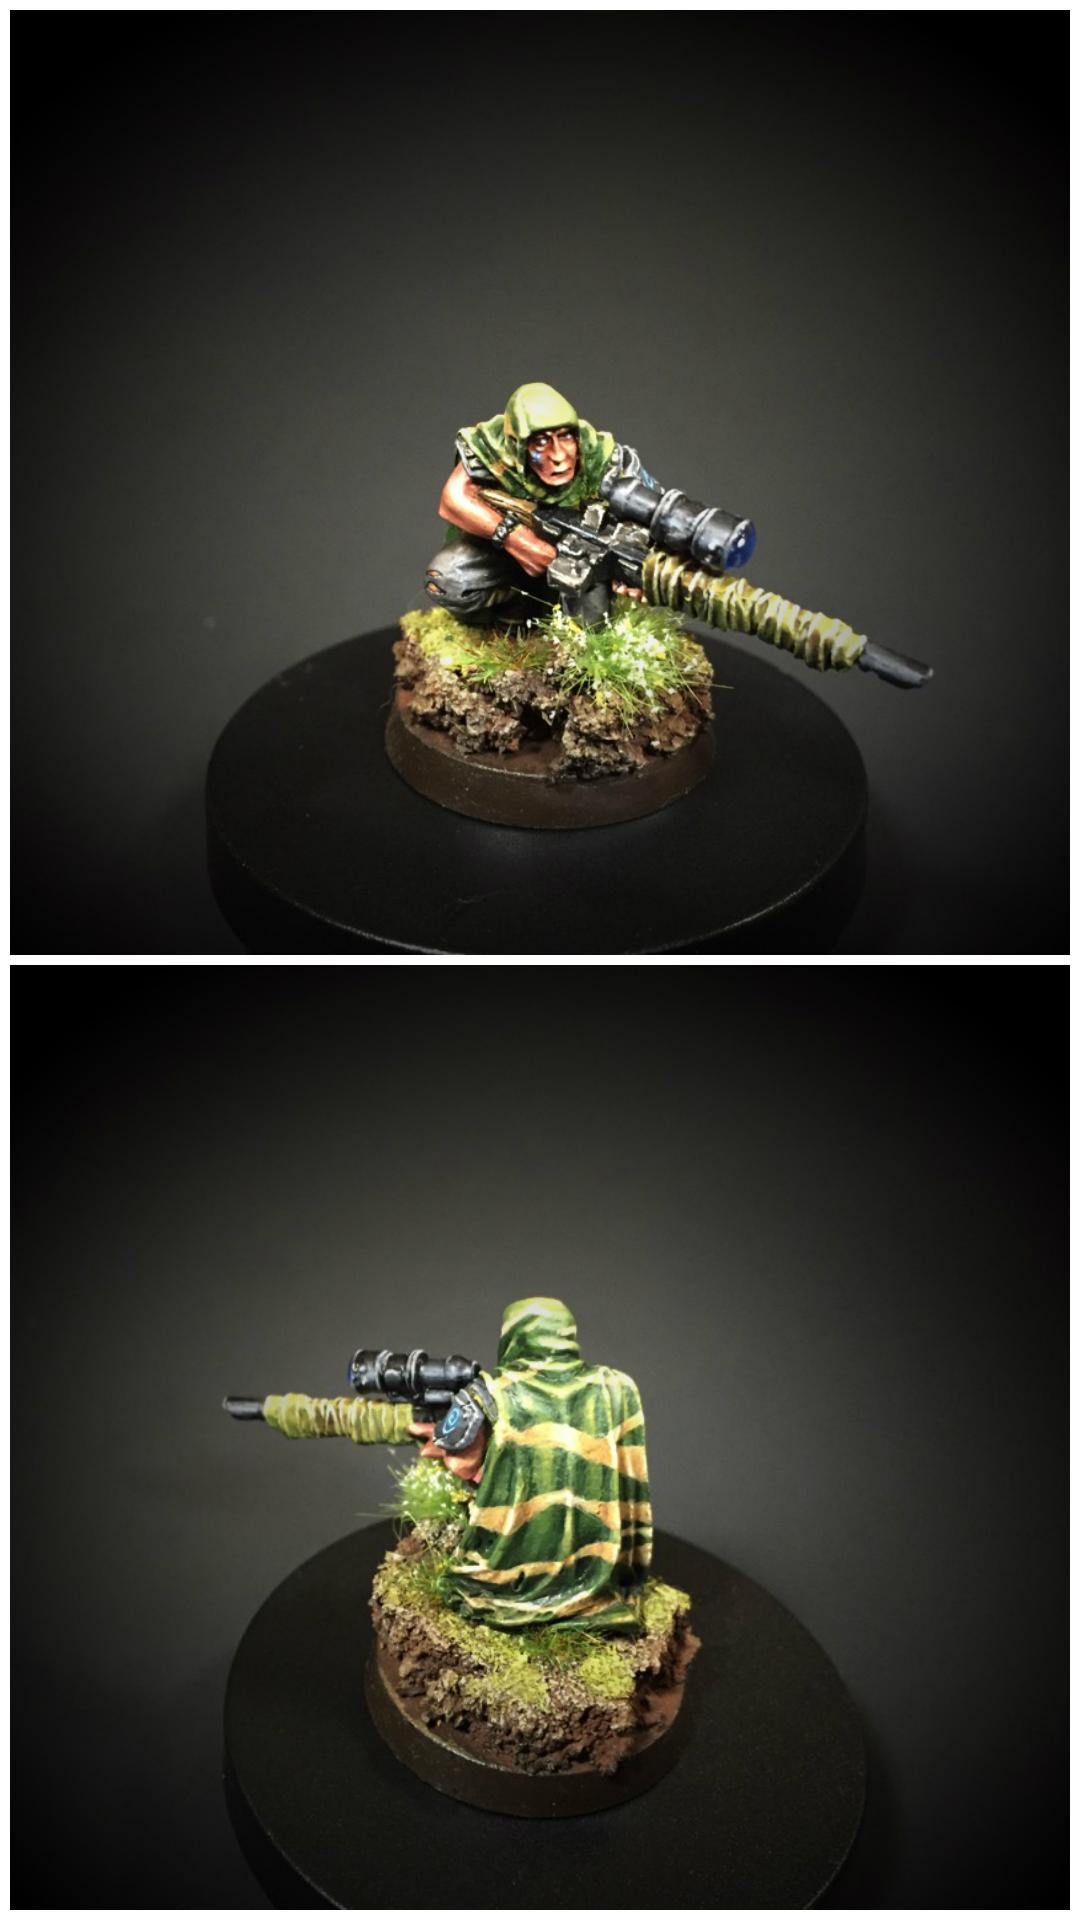 Astra Militarum, Base, Camouflage, Gaunt's Ghosts, Imperial Guard, The Empire